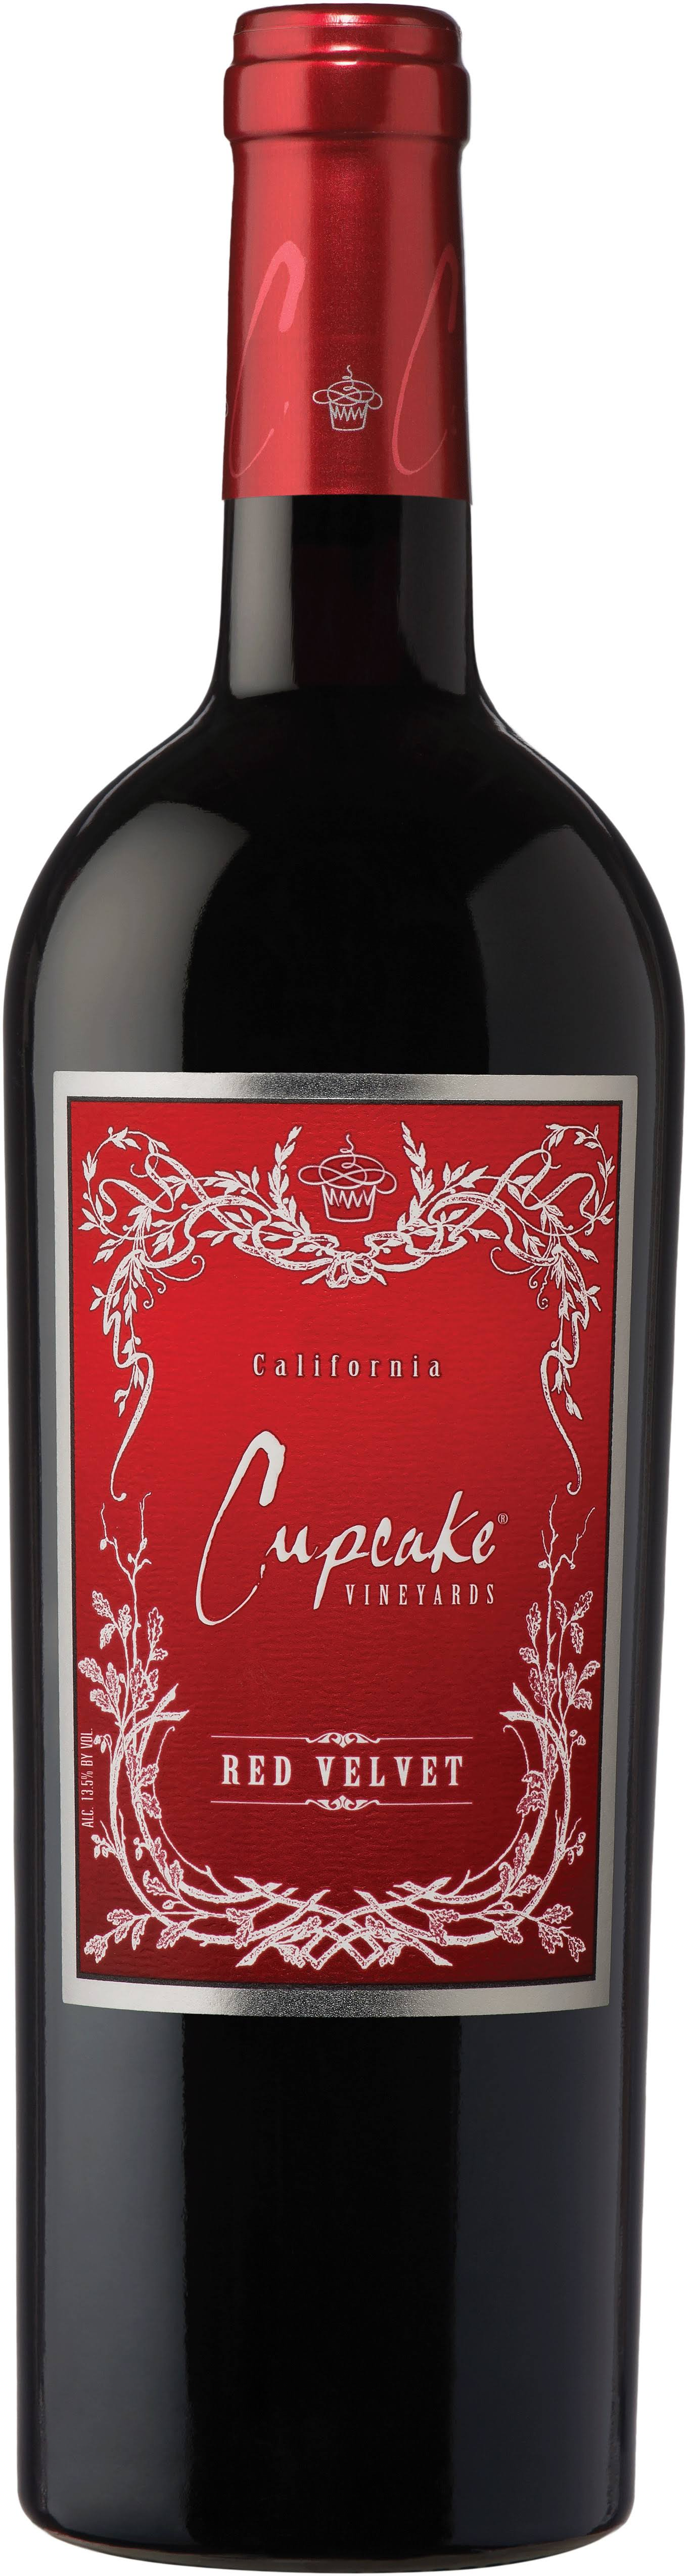 Cupcake Wine, Red Velvet, California, 2009 - 750 ml